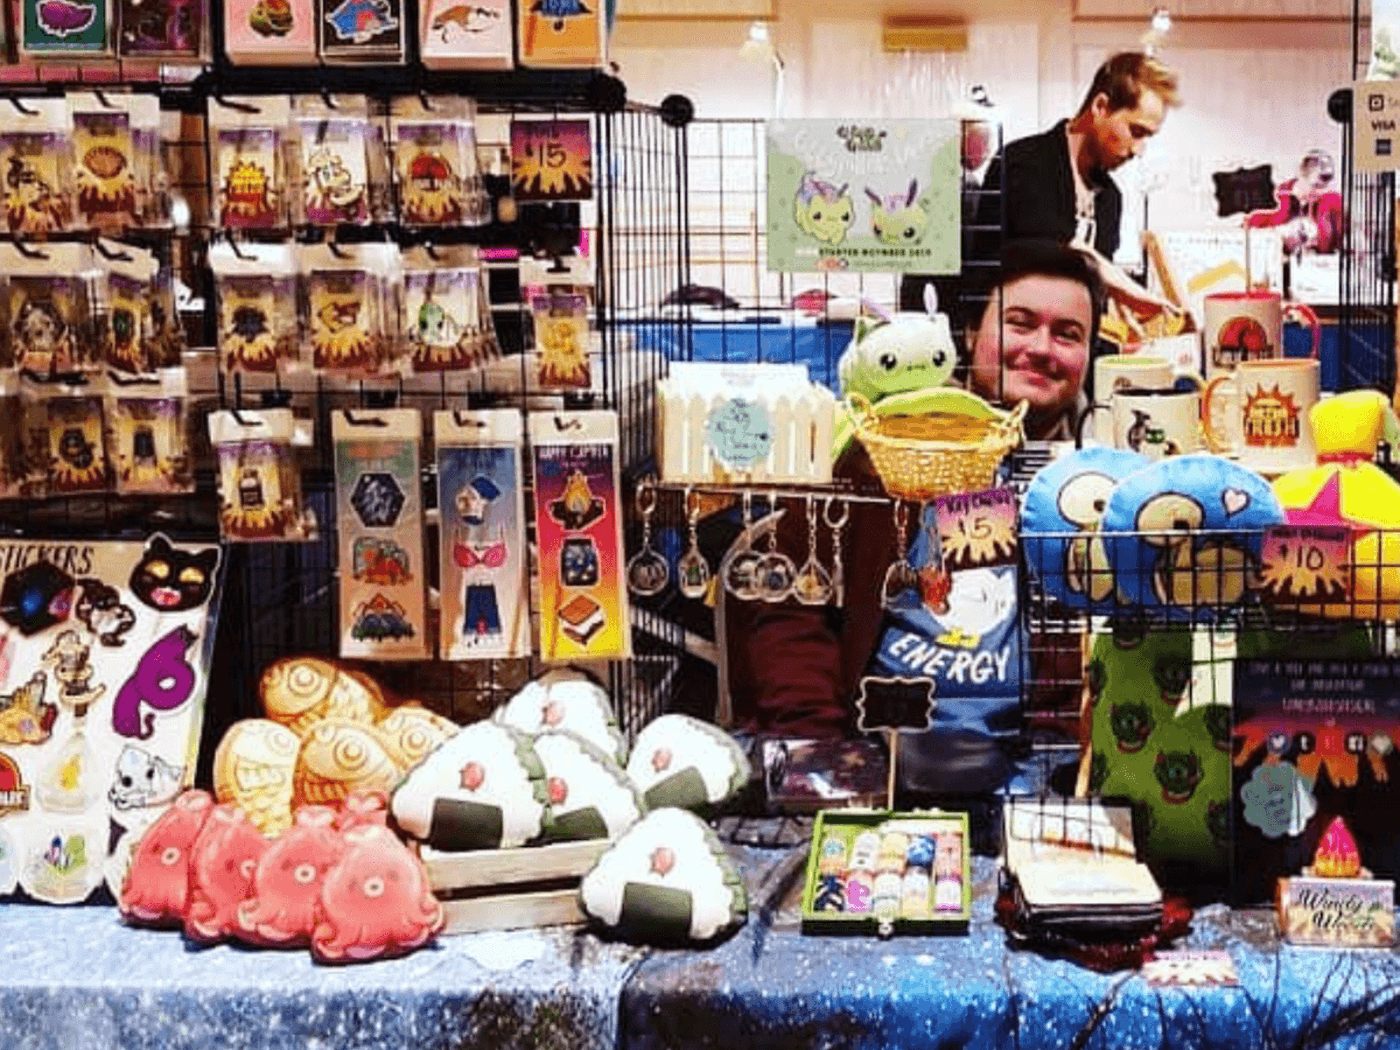 Lewis Haney, selling his Windy Woods designs at a convention center. Photo courtesy Lewis Haney.